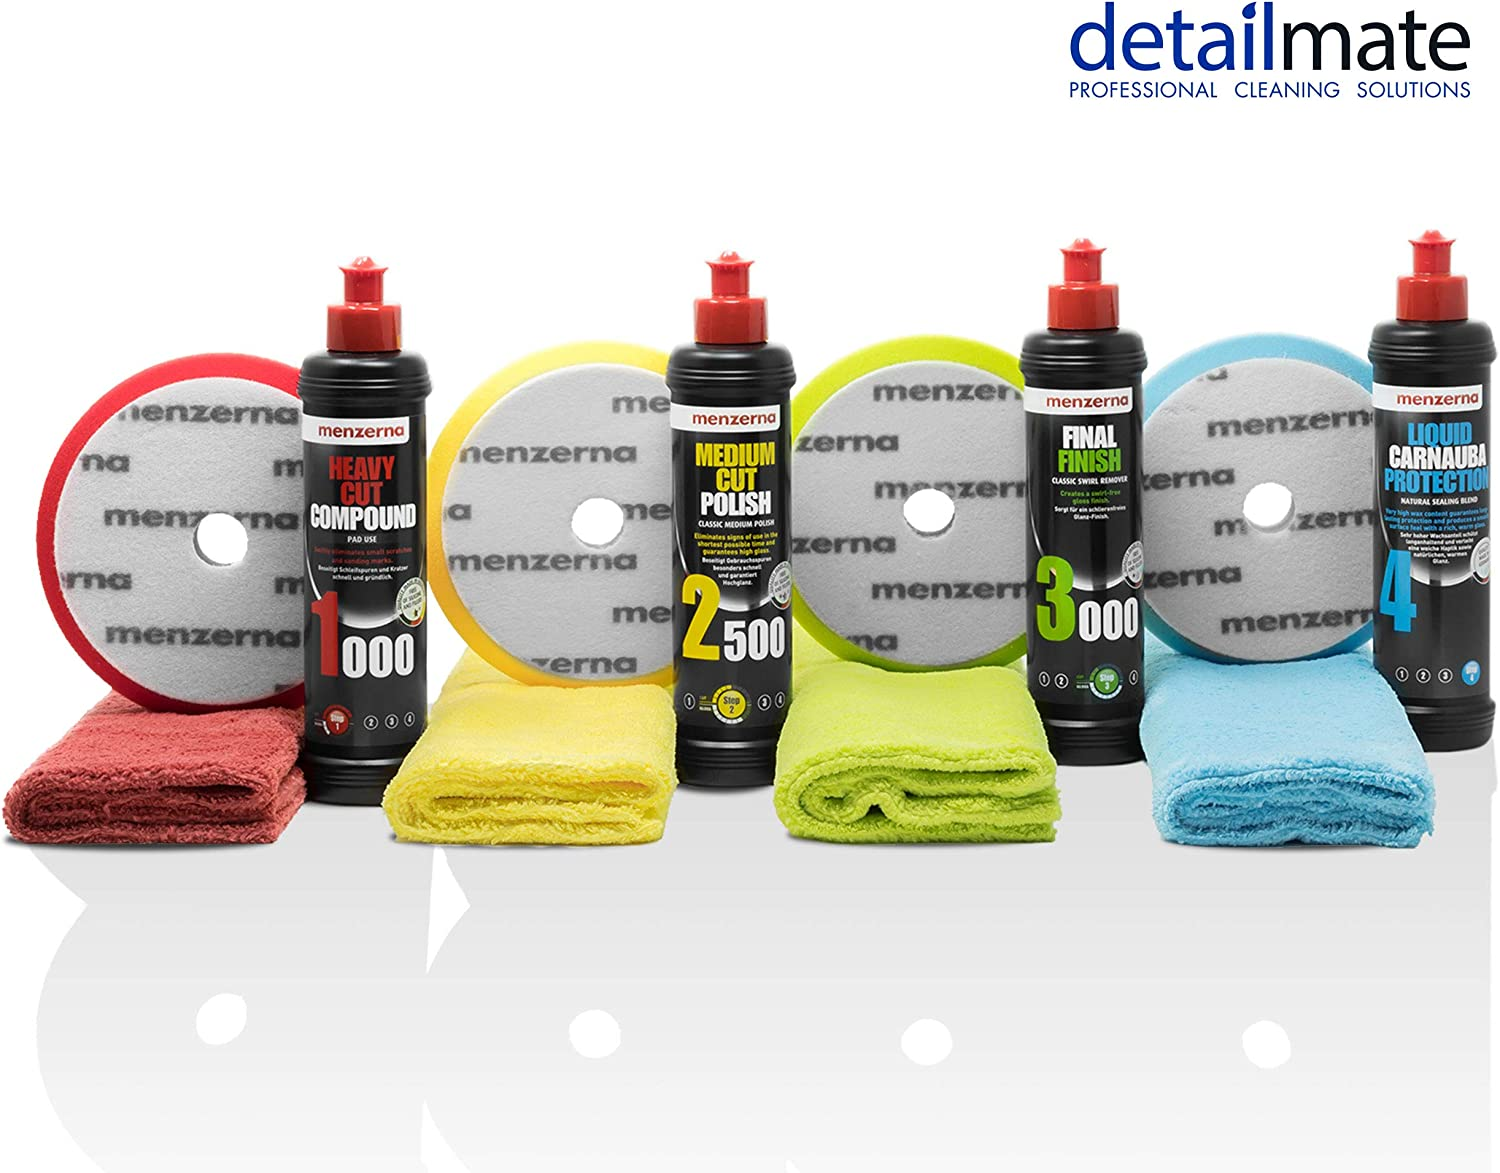 Detailmate Auto Politur Set Menzerna Autopolitur Super Heavy Cut Compound Hc1000 Medium Cut 2500 Final Finish Ff3000 Liquid Carnauba Wachs 4 Passende Menzerna Pads 4 Poliertücher Auto